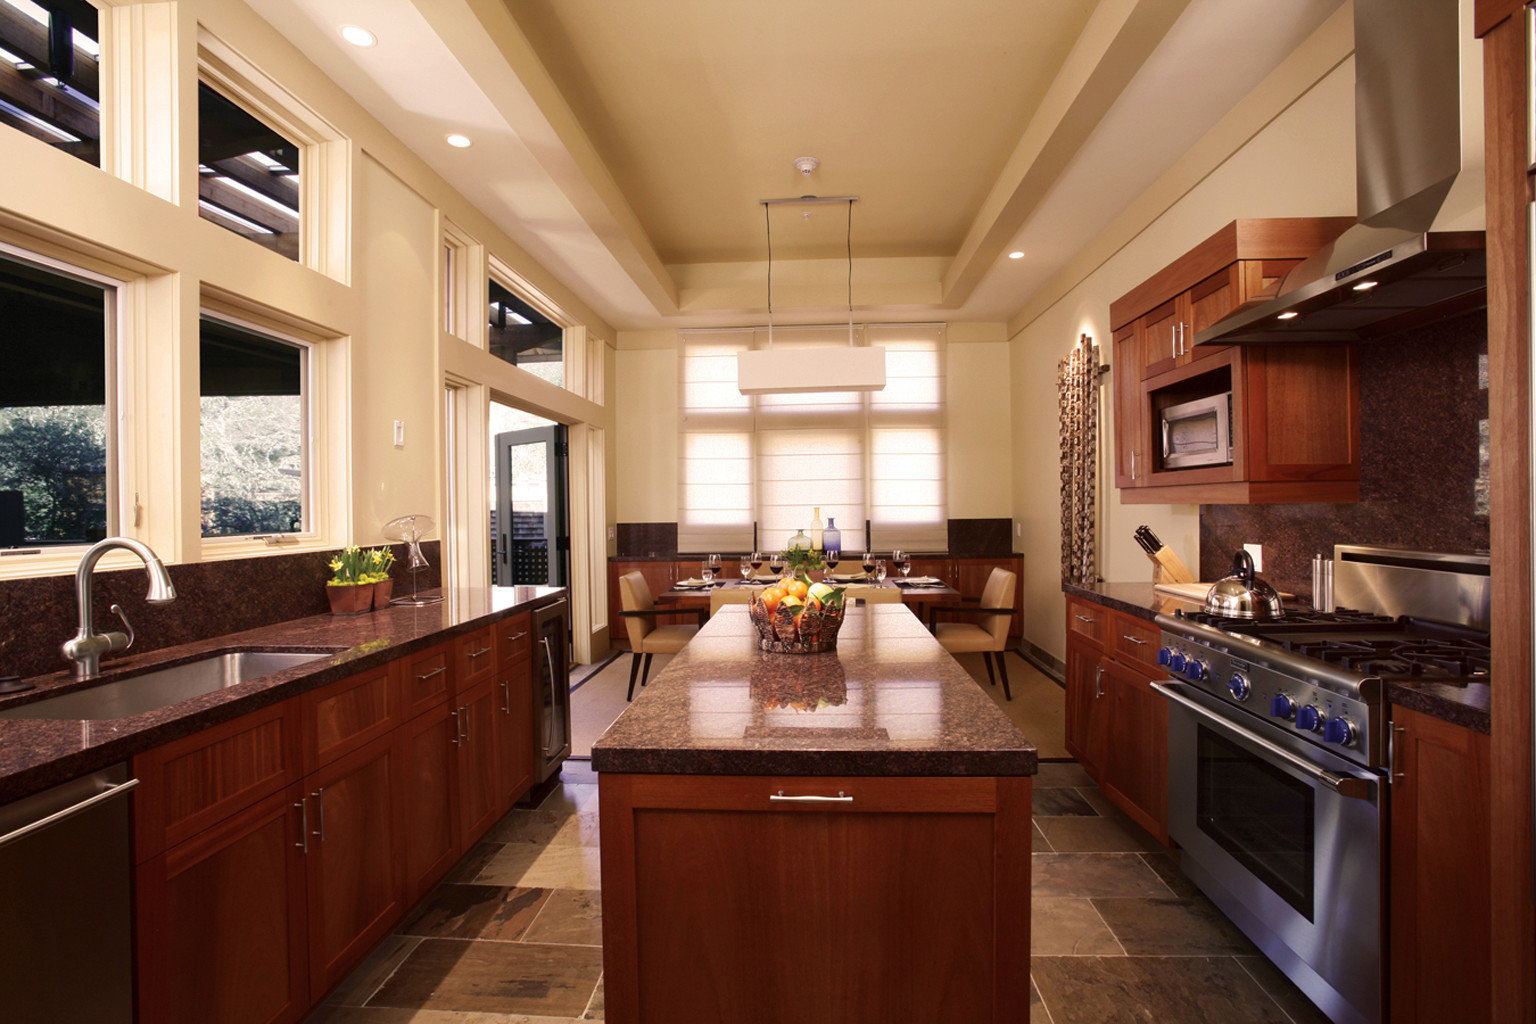 Eco Kitchen Luxury Ranch Romance Romantic Rustic Wellness cabinet property counter home cabinetry countertop Island hardwood cuisine classique sink mansion cottage living room wood flooring appliance stainless Modern Bar